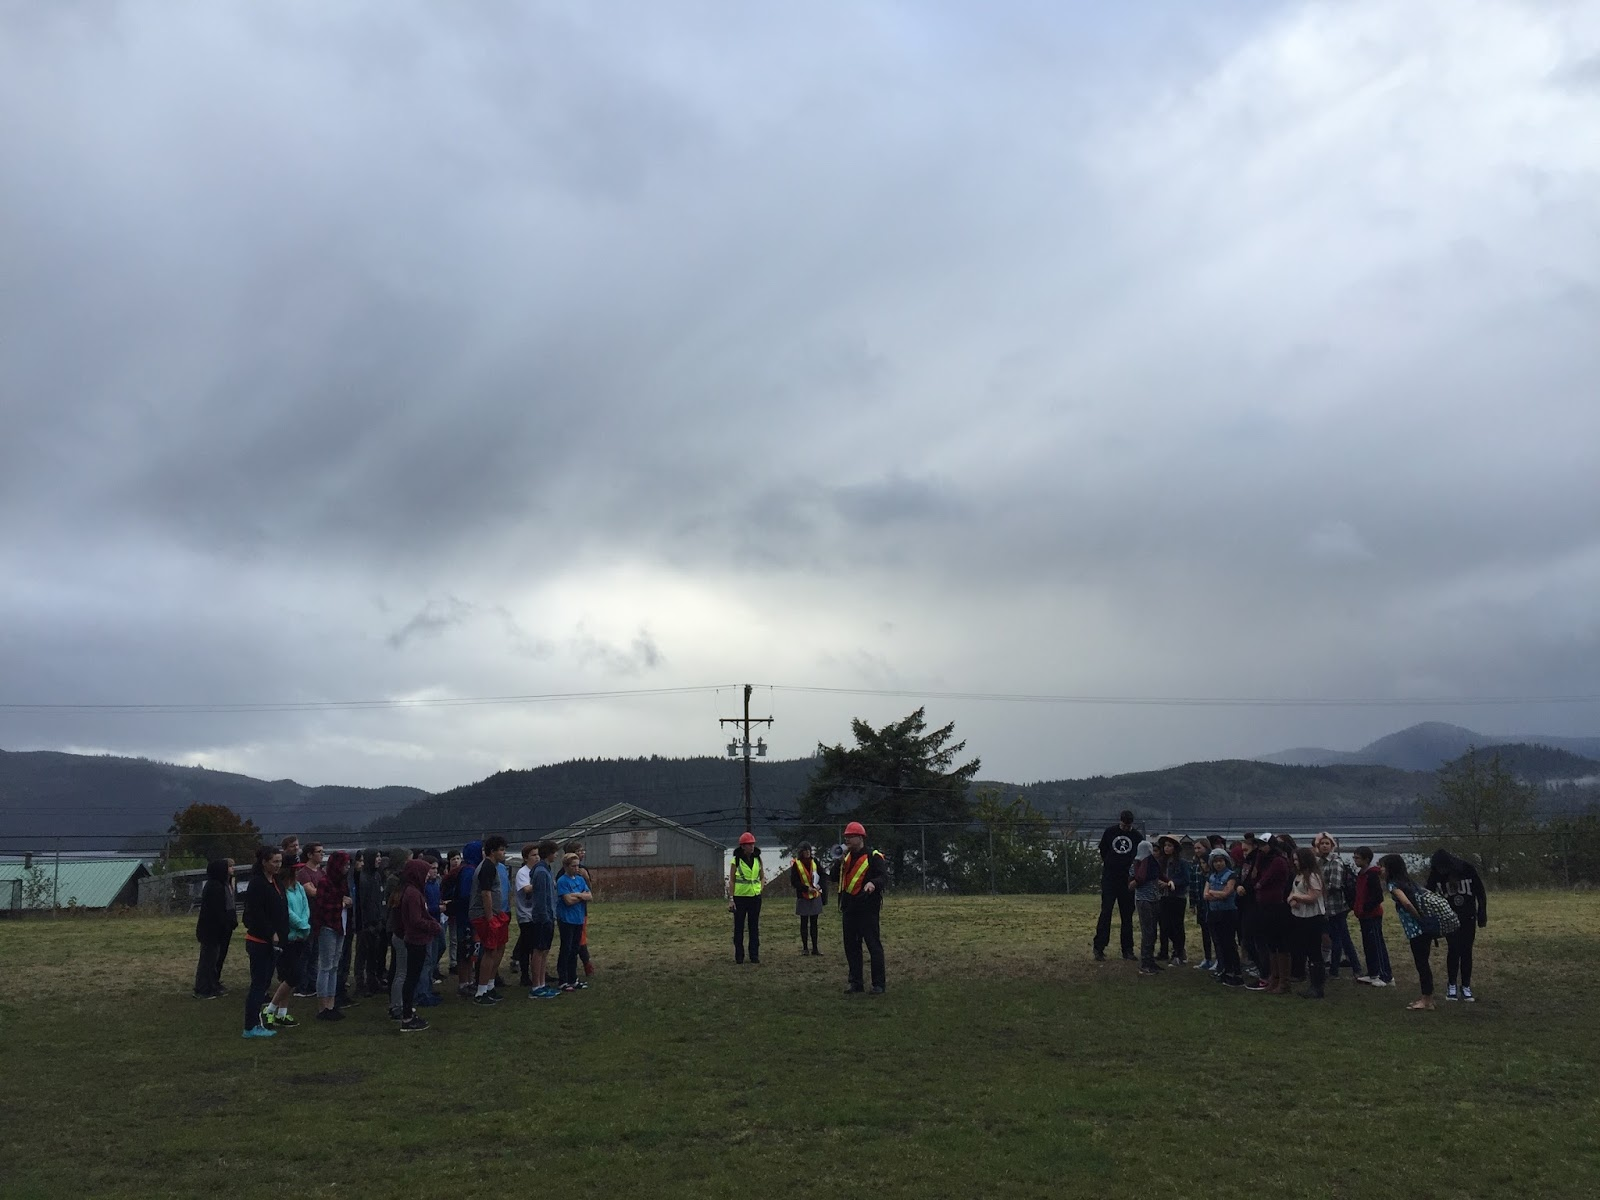 The principal, Devlin, announces that we all have to walk to the top of the hill